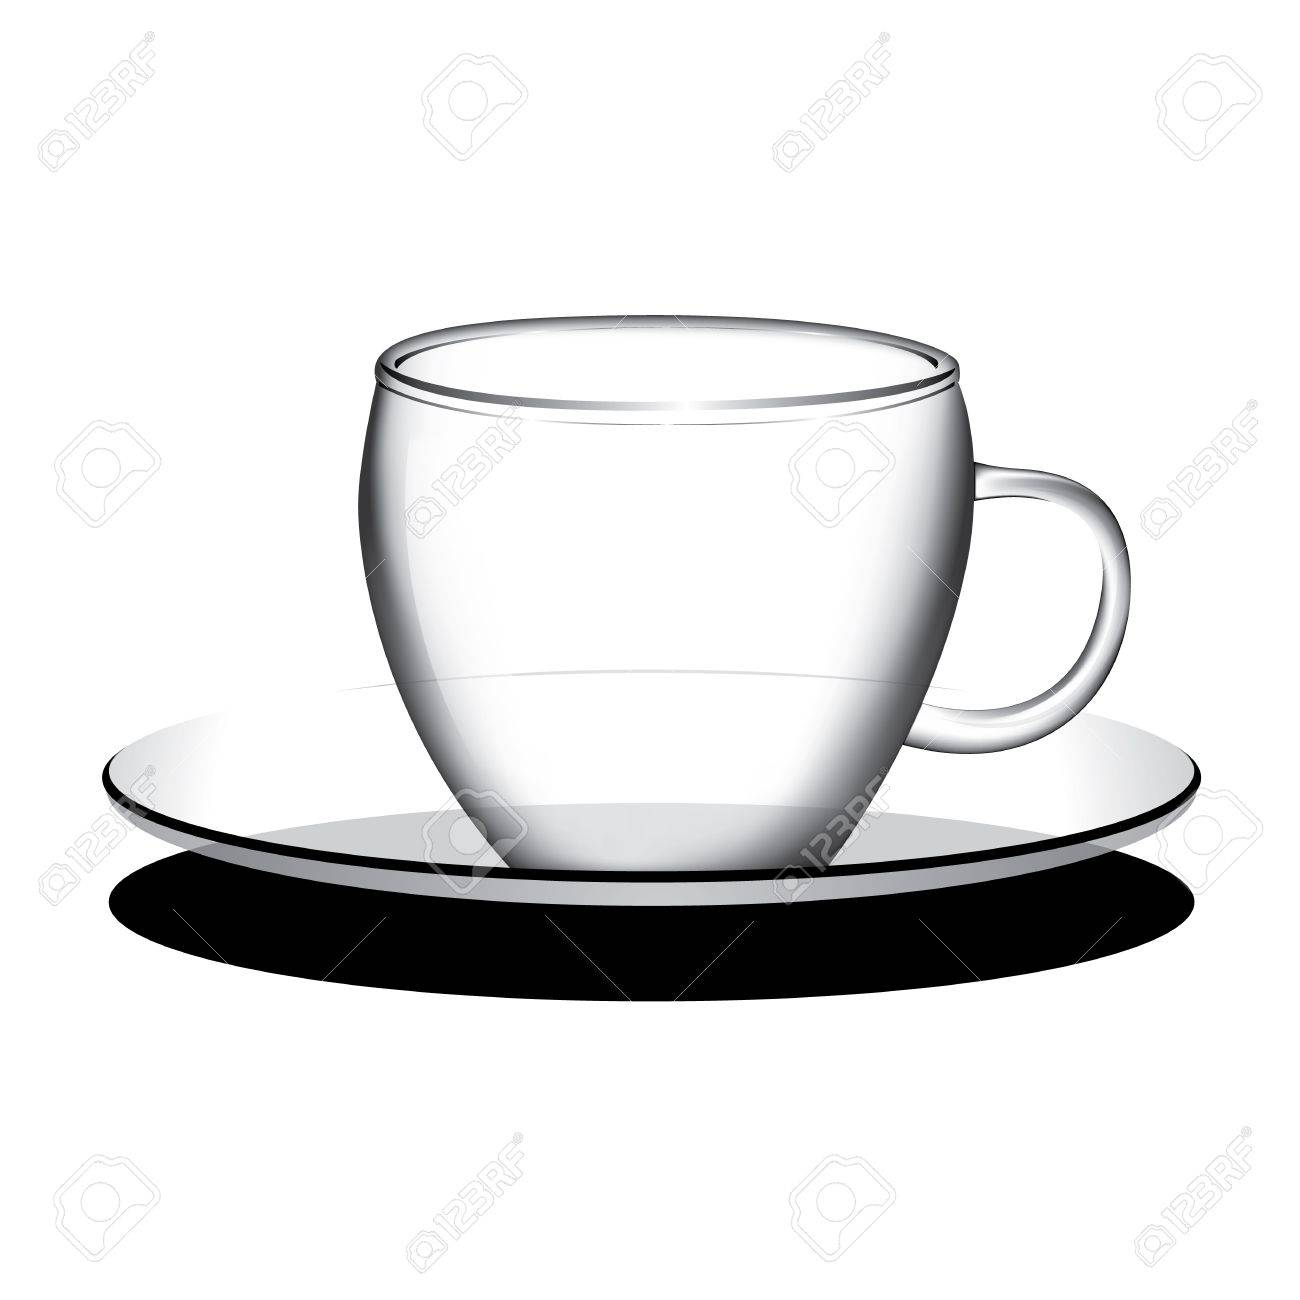 empty coffee tea cup vector royalty free cliparts vectors and rh 123rf com teacup free vector download teacup free vector download